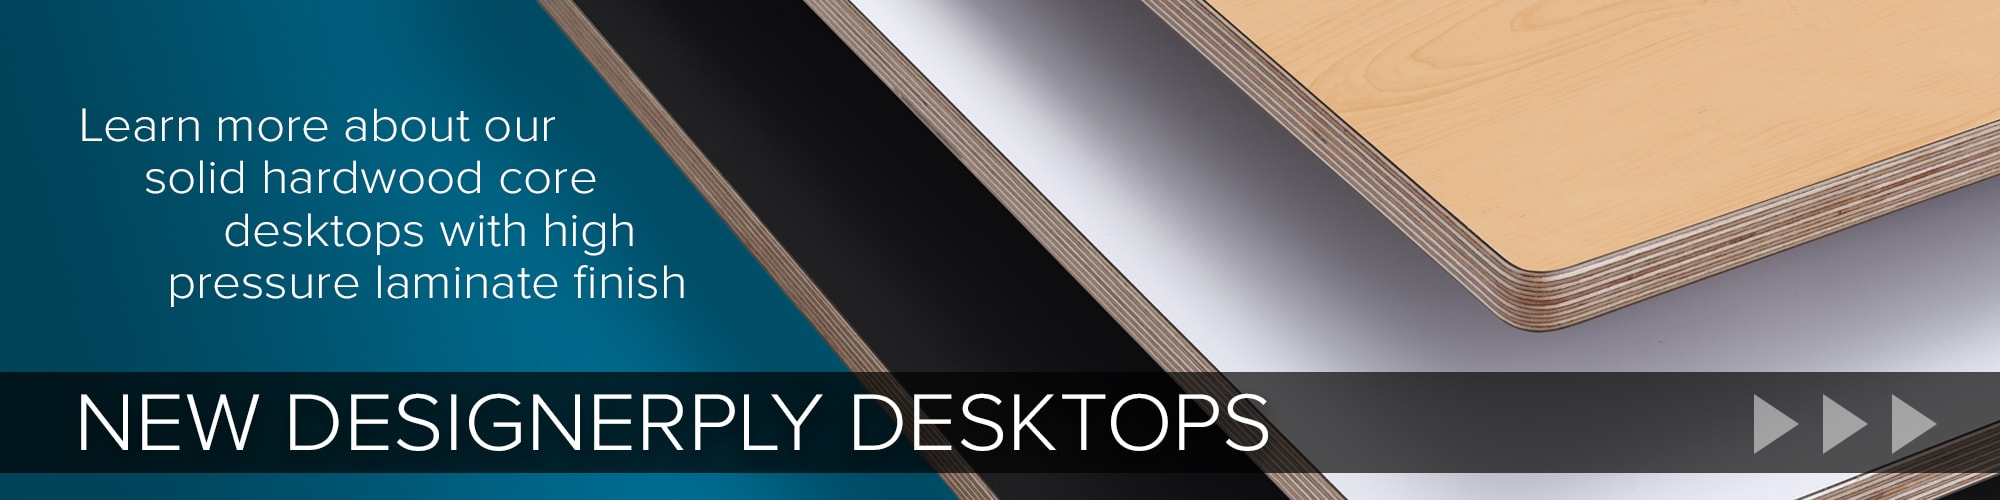 DesignerPly Introduction Banner